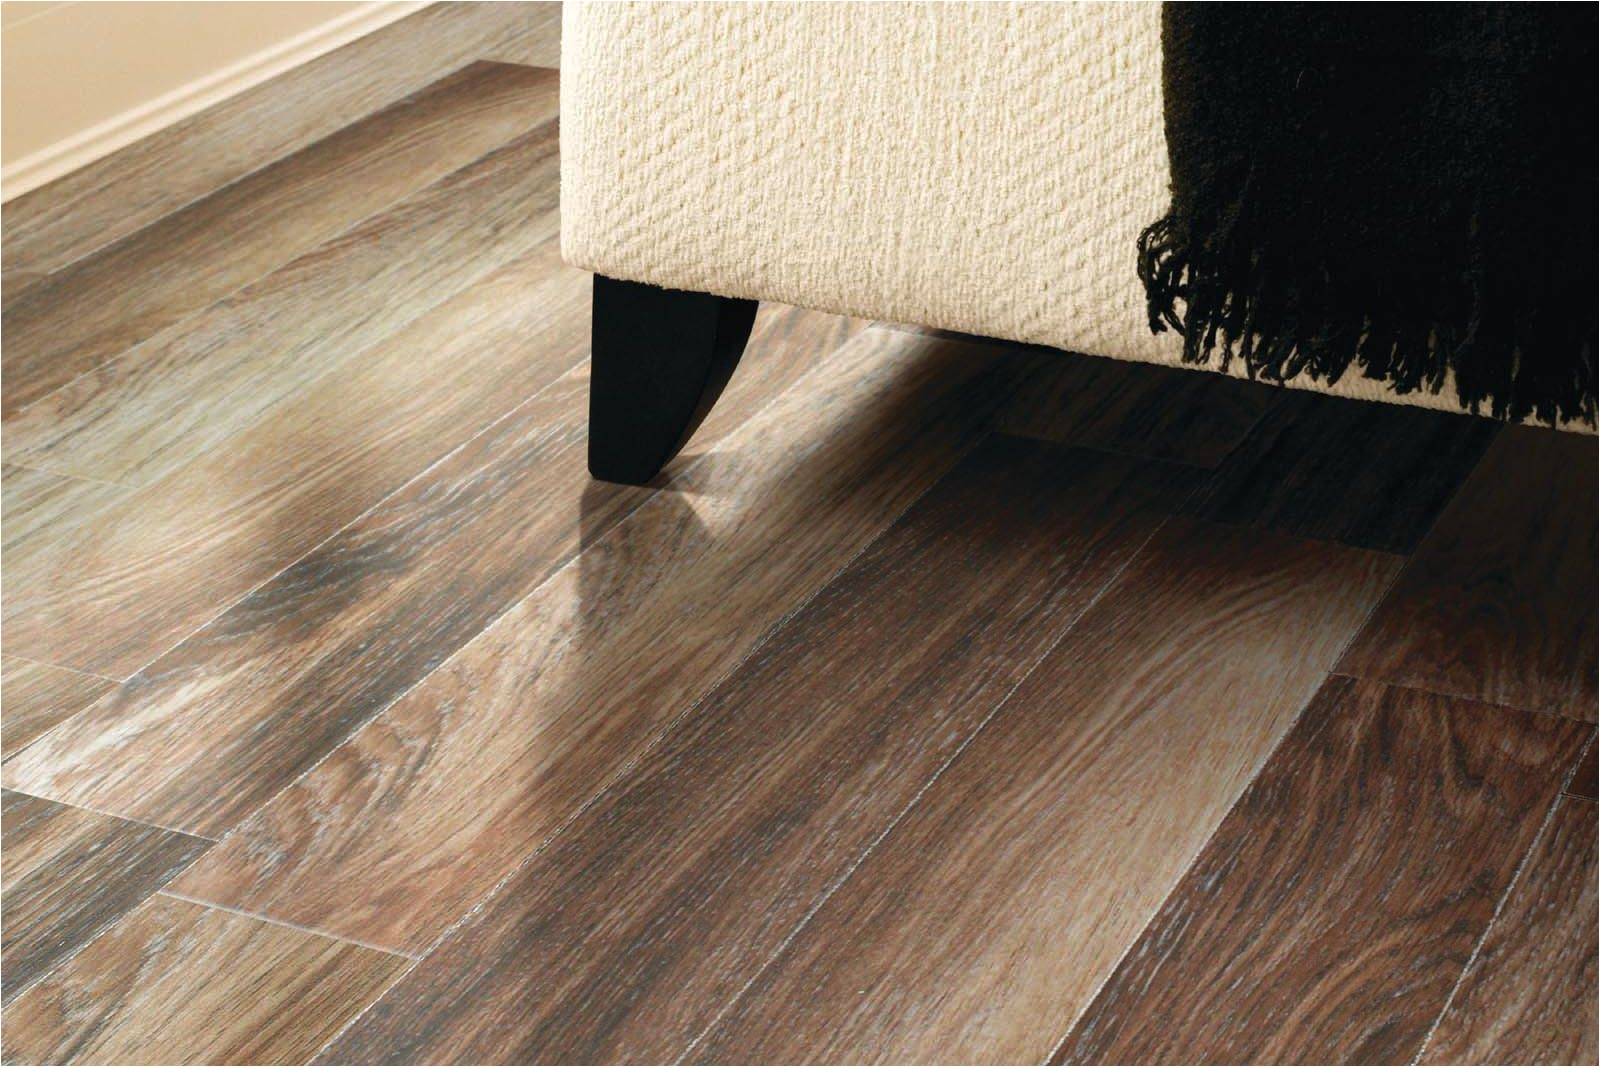 Laminate Flooring Made In Usa Mediterranea the Warm Look Of Wood Combines with the Cool touch Of